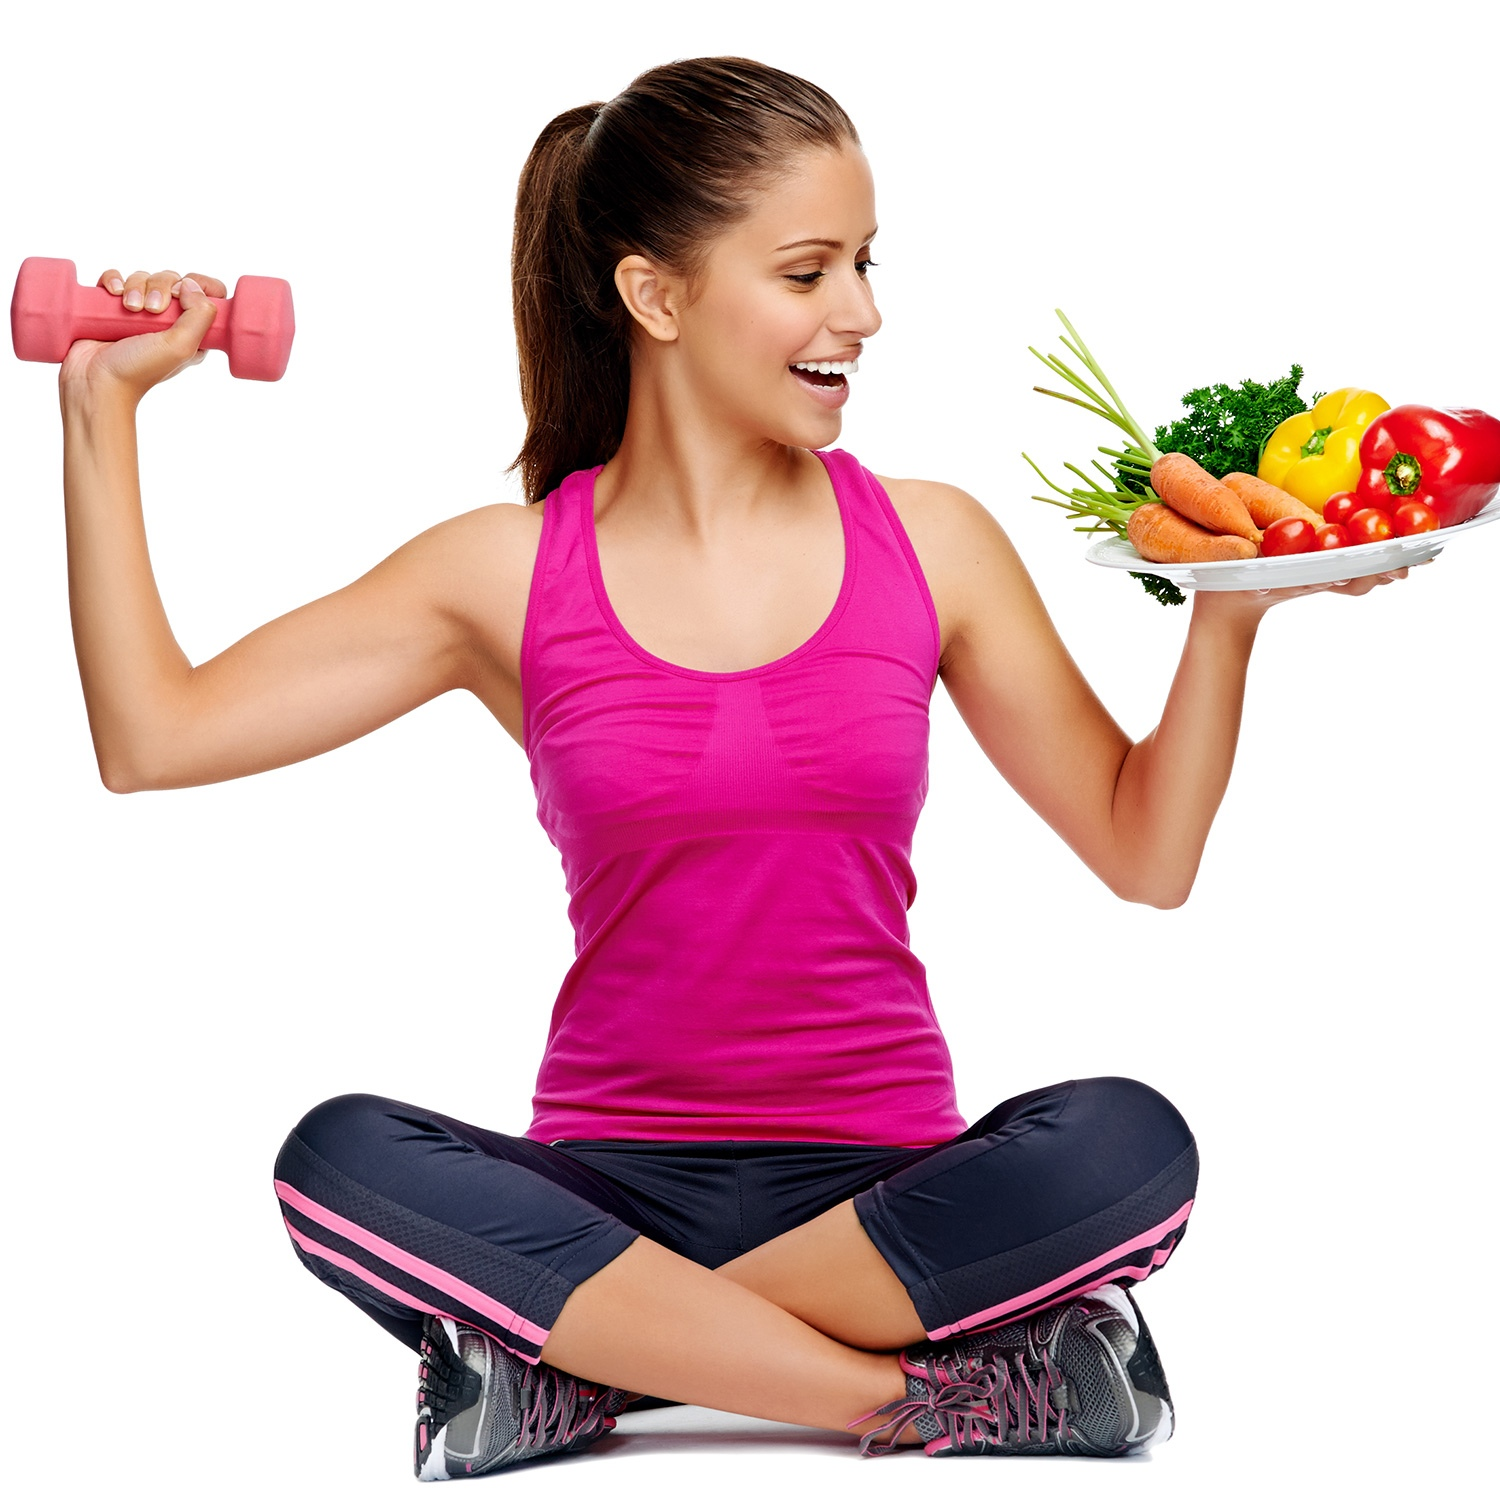 article on importance of healthy diet and exercise